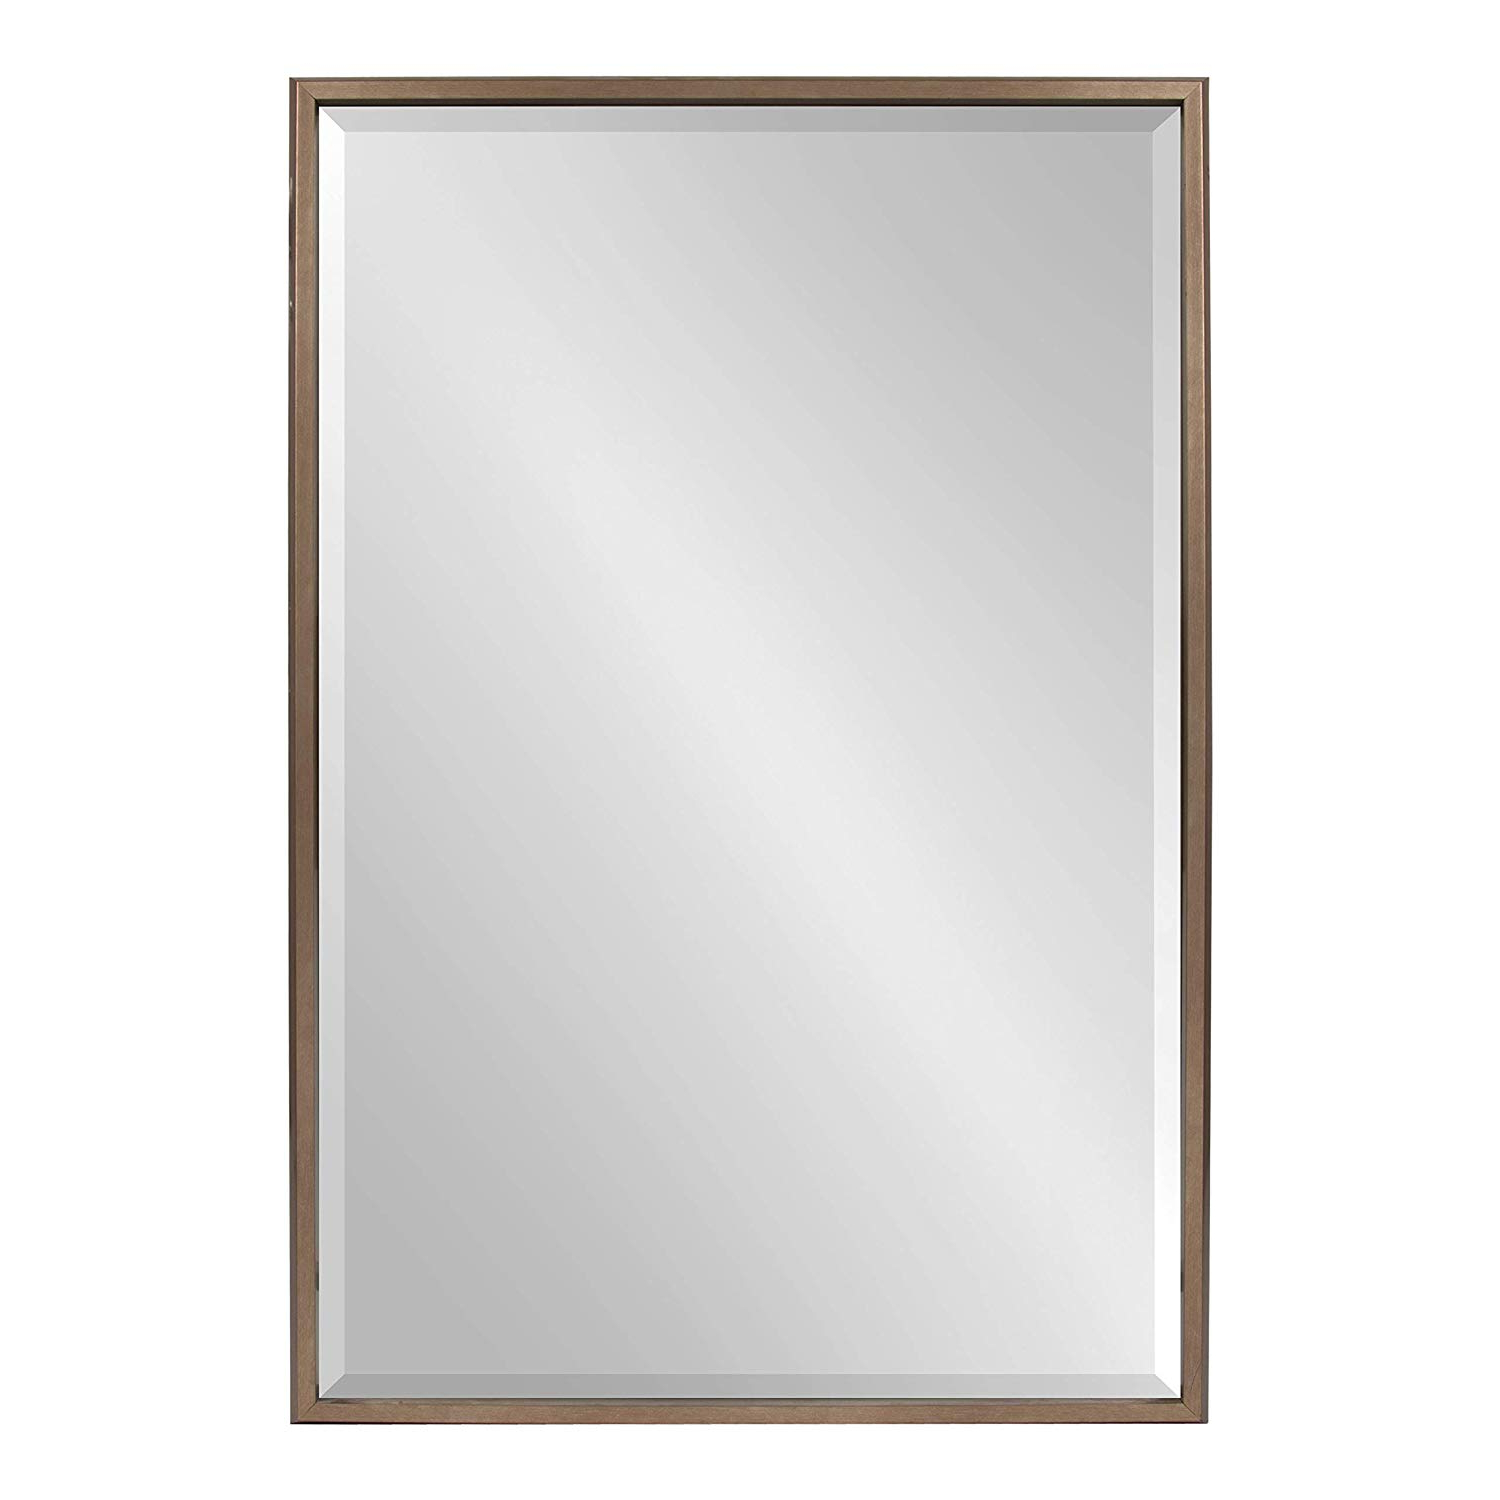 Glam Beveled Accent Mirrors Inside 2019 Amazon: Kate And Laurel Blake Modern Glam Framed Beveled Wall (View 15 of 20)